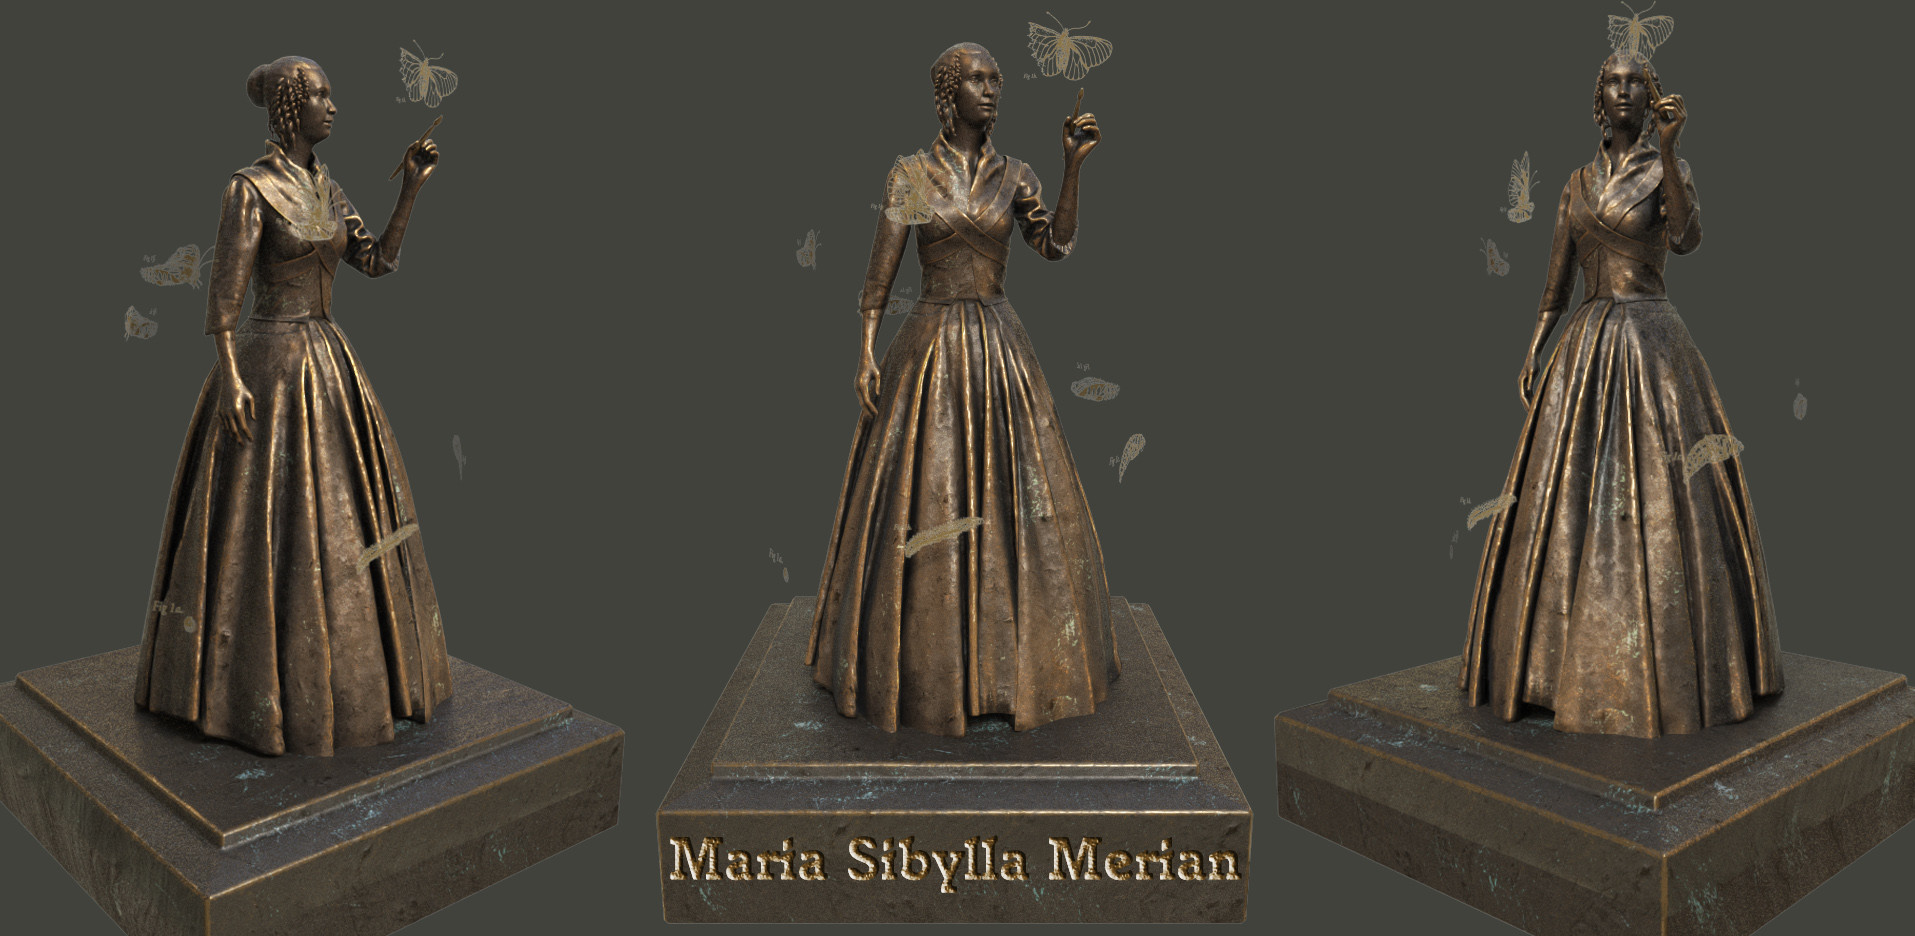 Maria Sibylla Merian, entomologist & scientific illustrator.